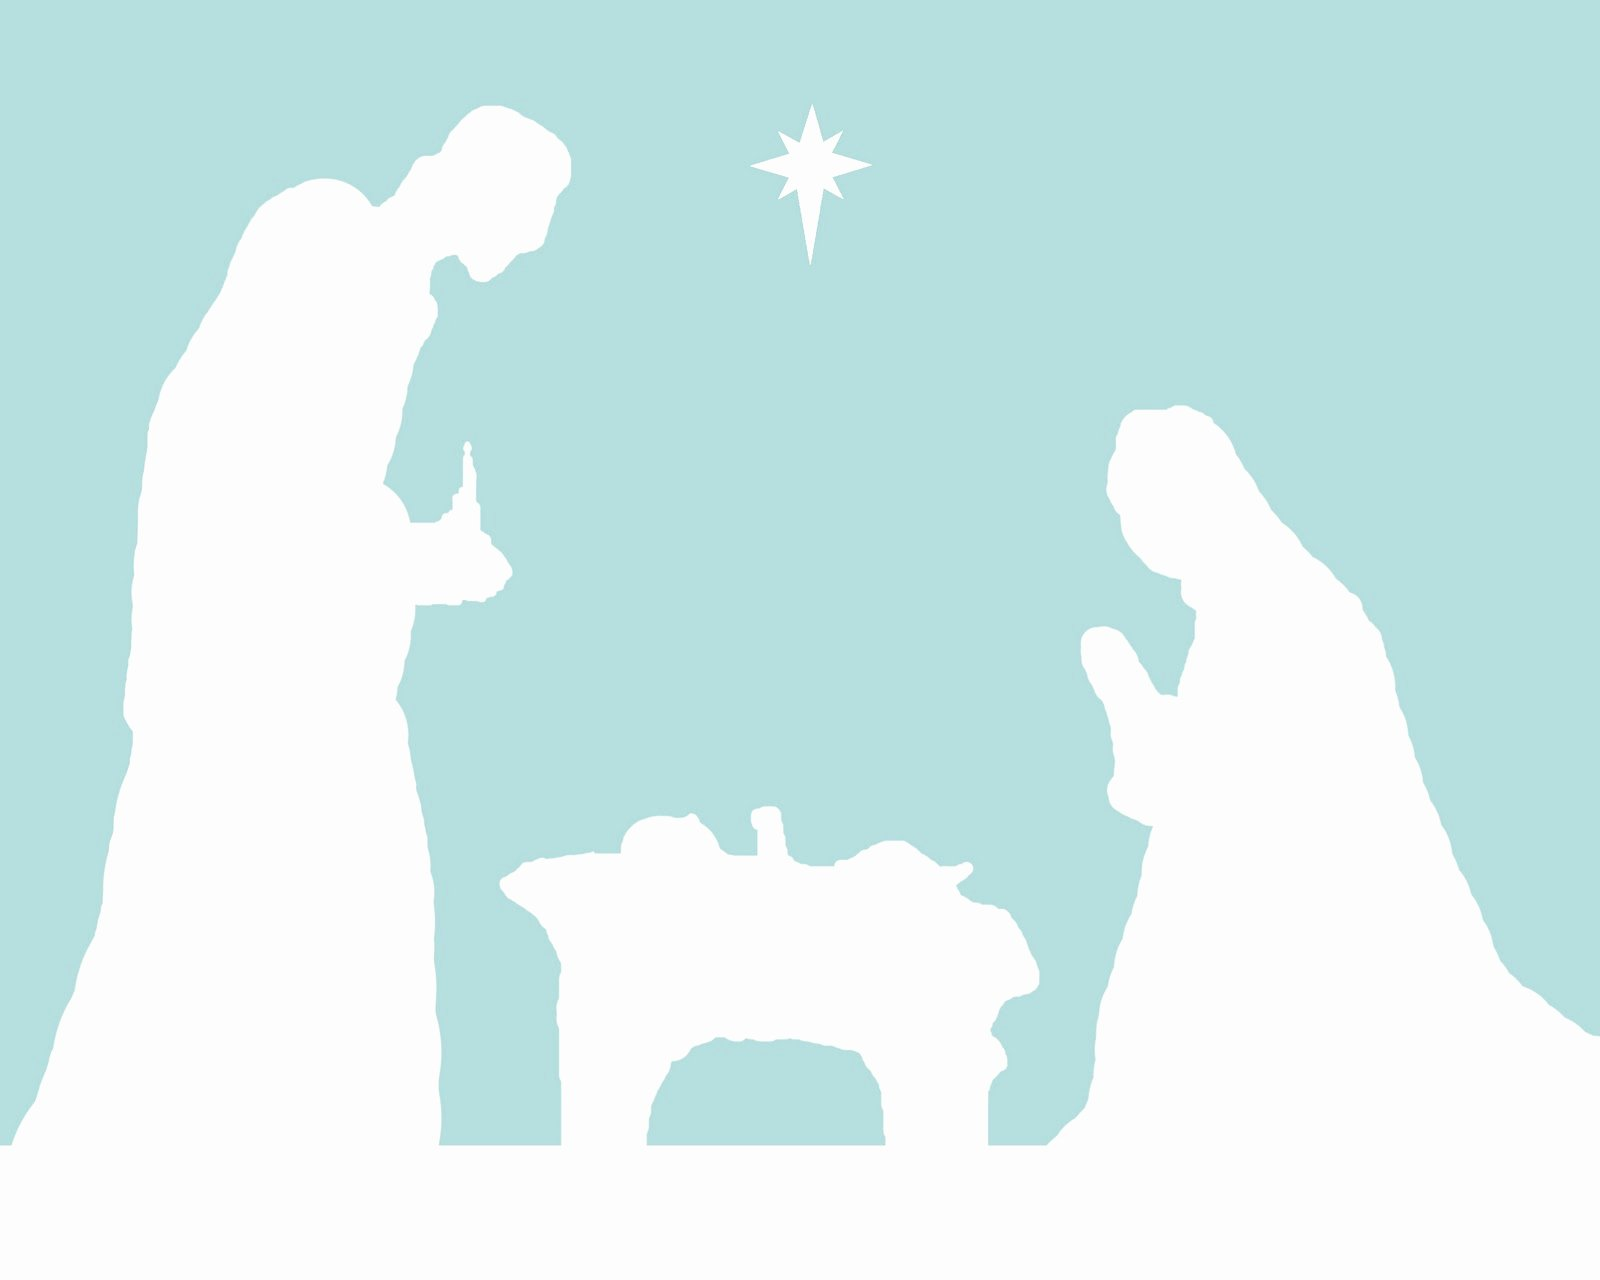 Nativity Silhouette Printable Inspirational Peace In the Pandemonium December 2010